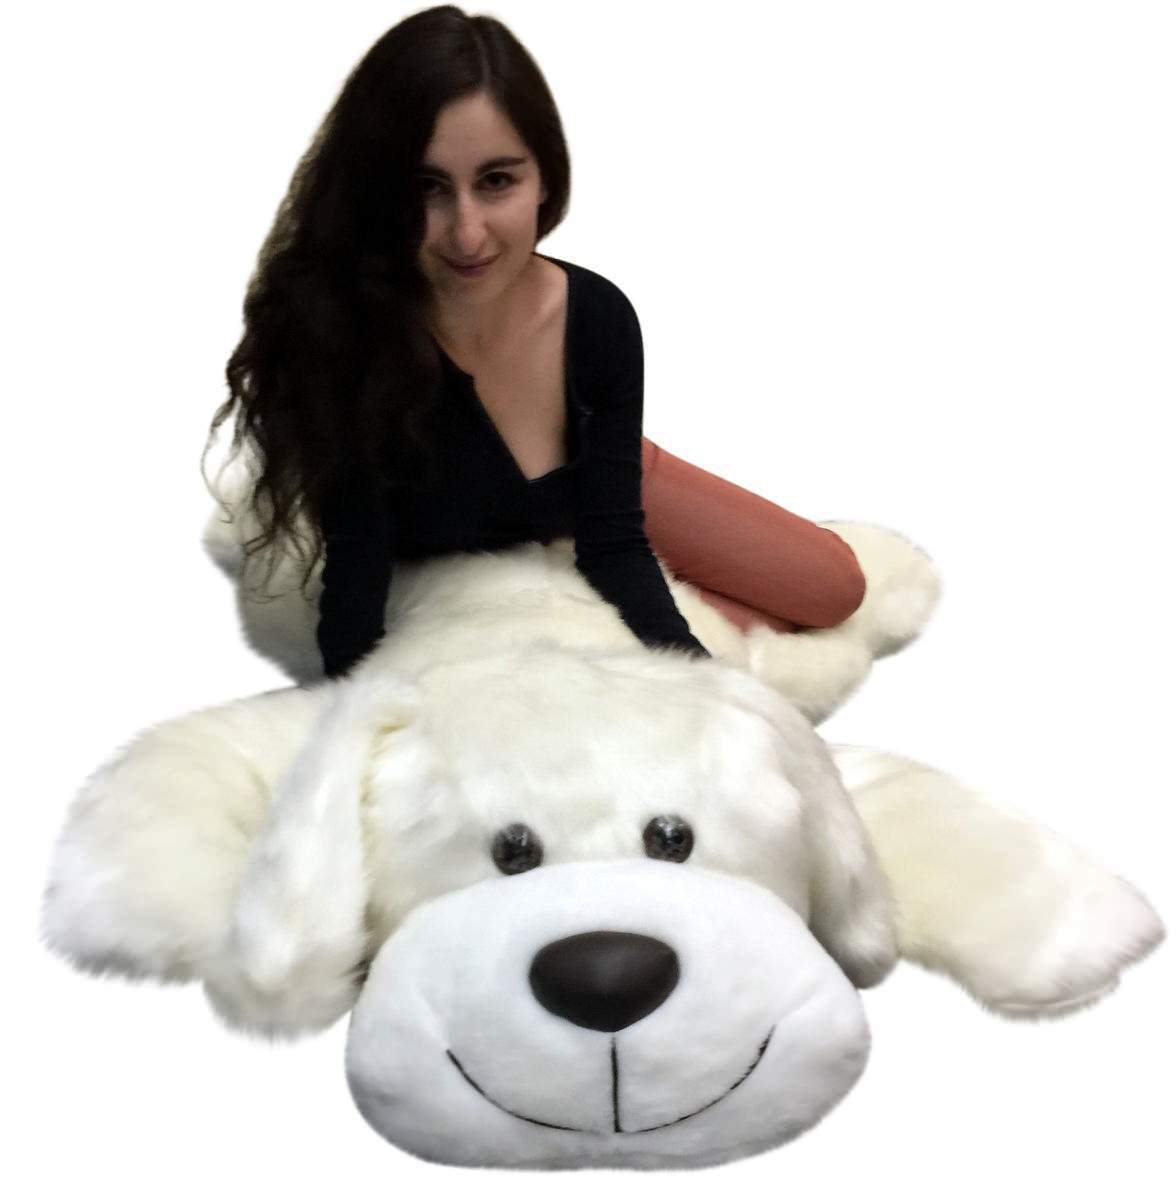 American Made Giant Stuffed 5 Foot Dog 60 Inch Soft Large Plush Puppy White New